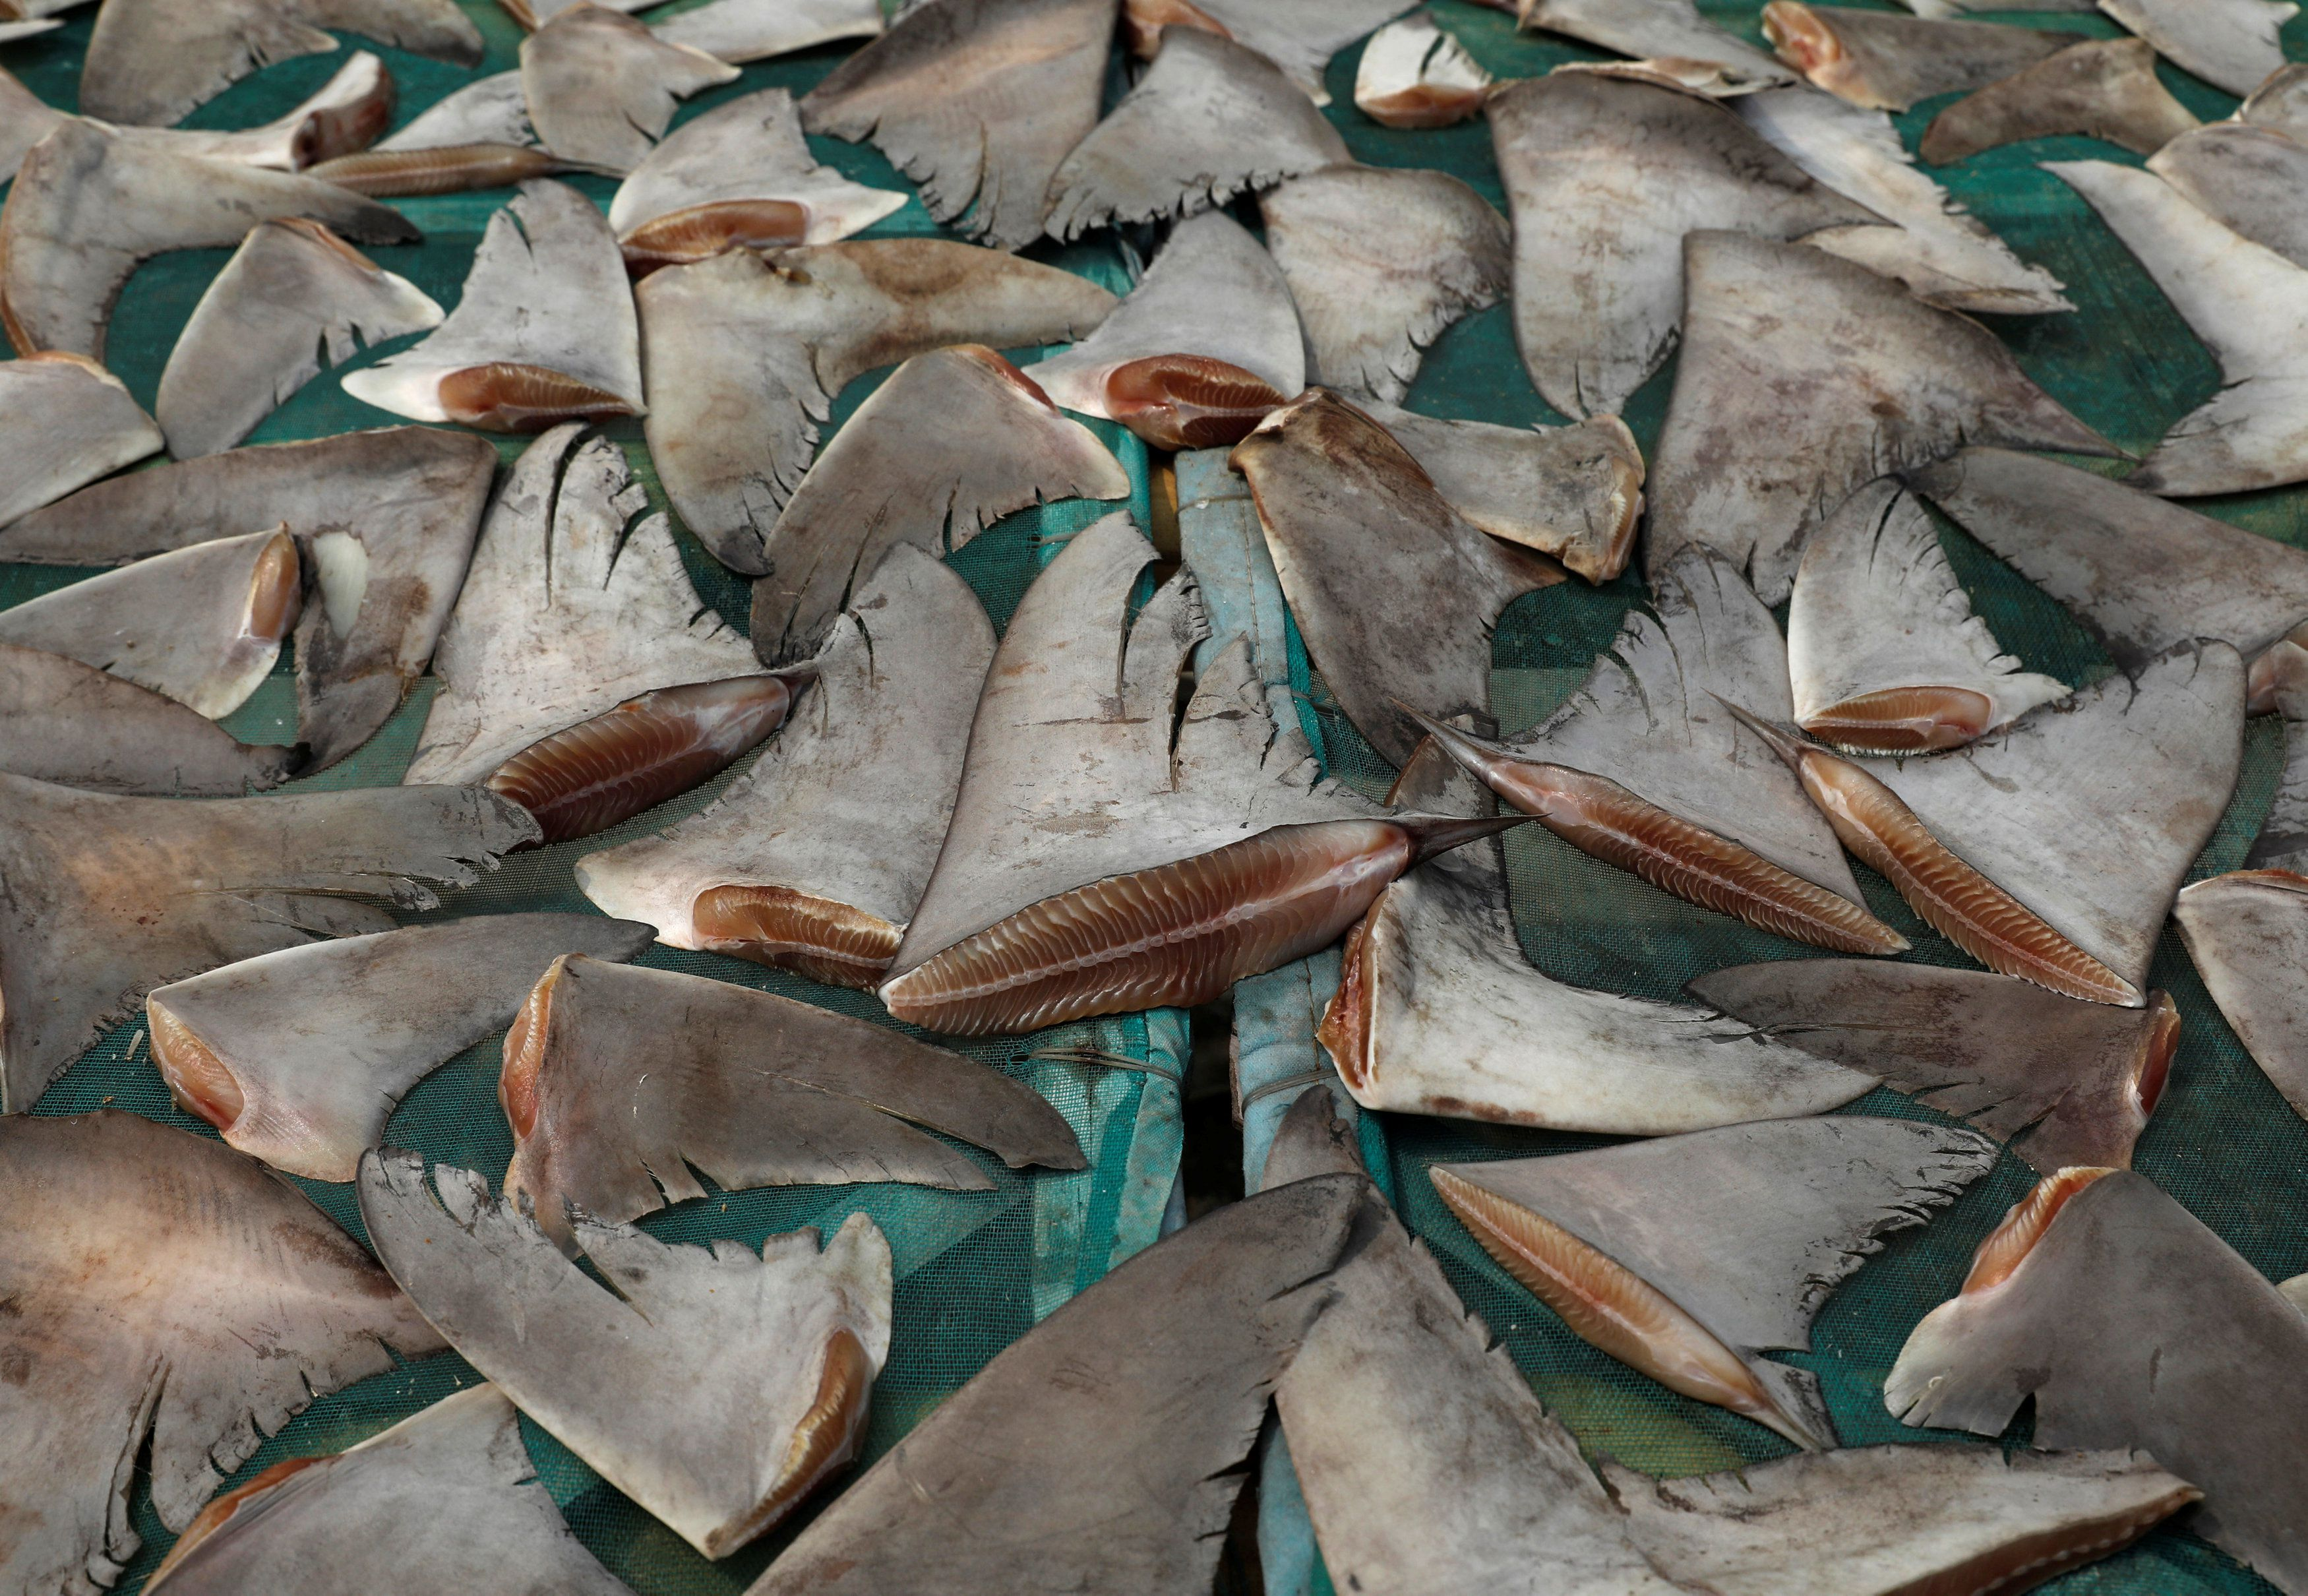 Newly passed legislation expected to make shark finning illegal as early as Friday